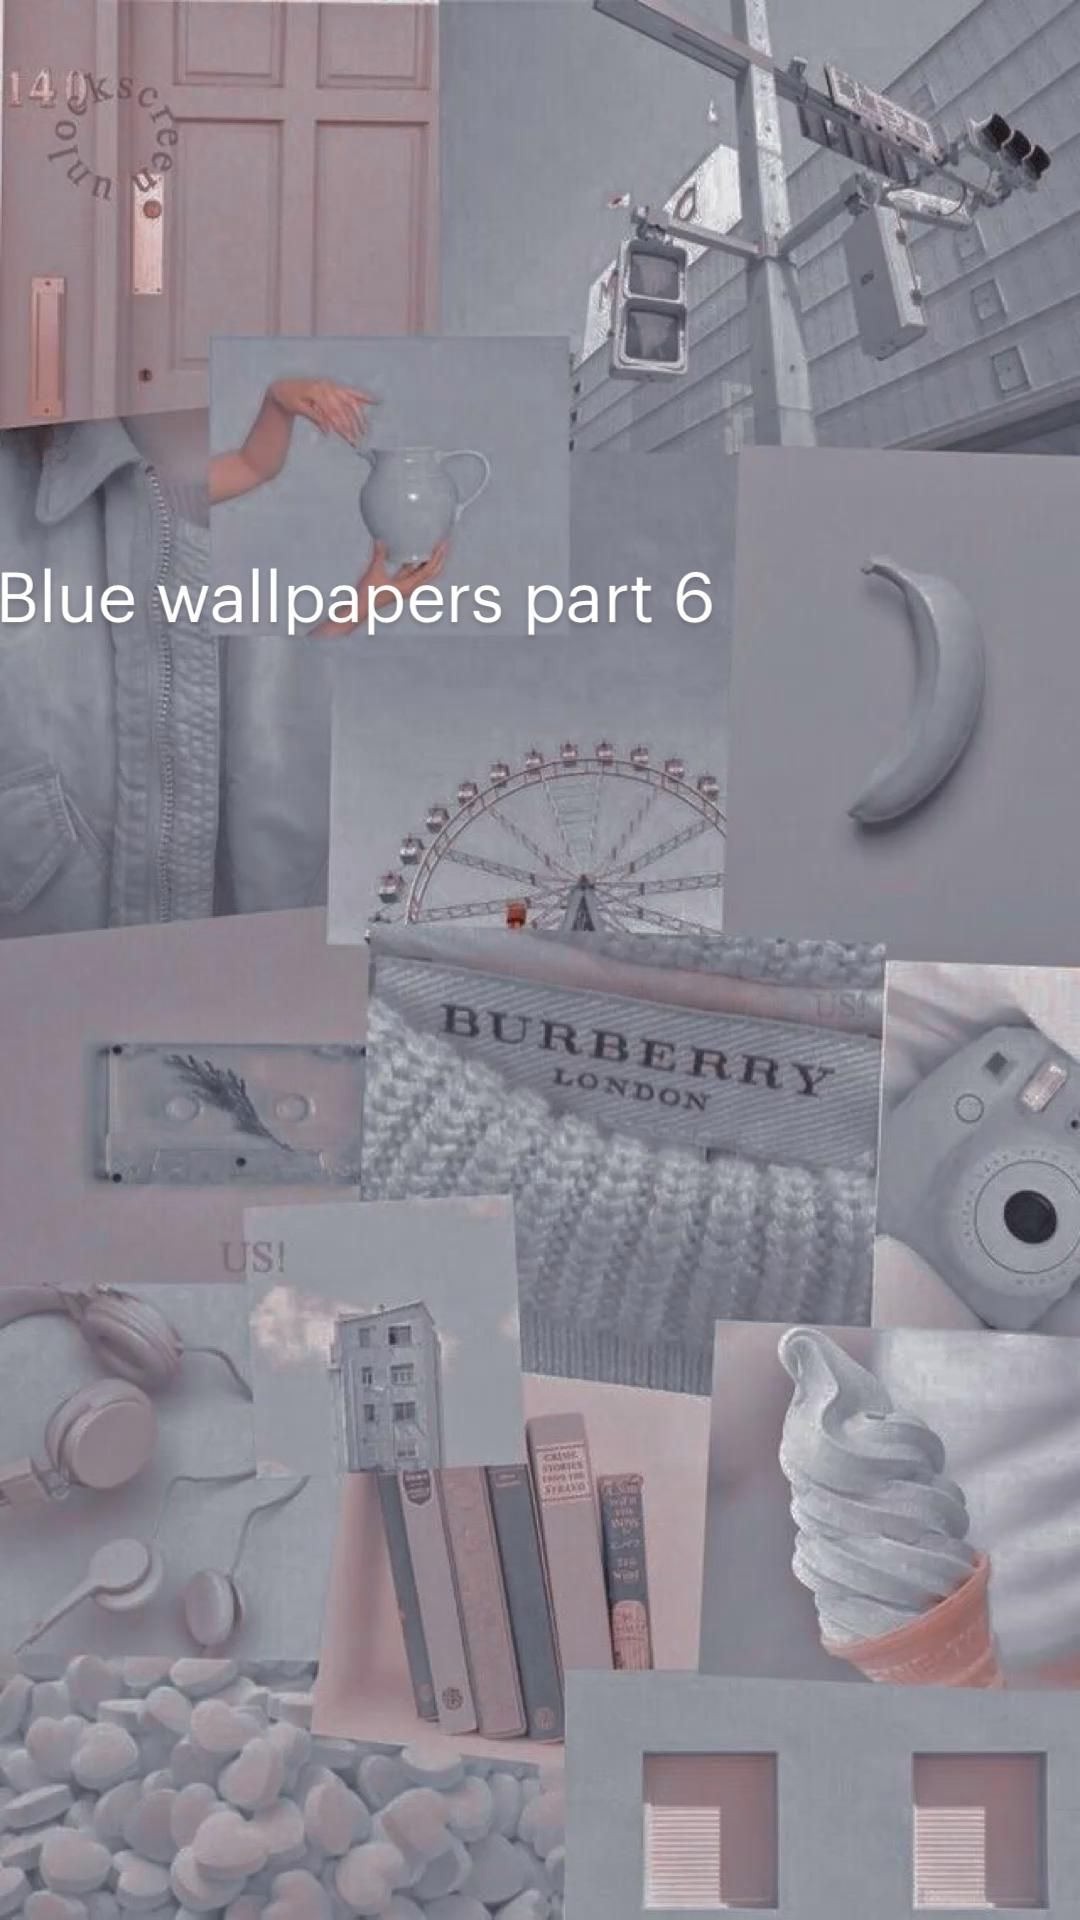 Blue wallpapers part 6